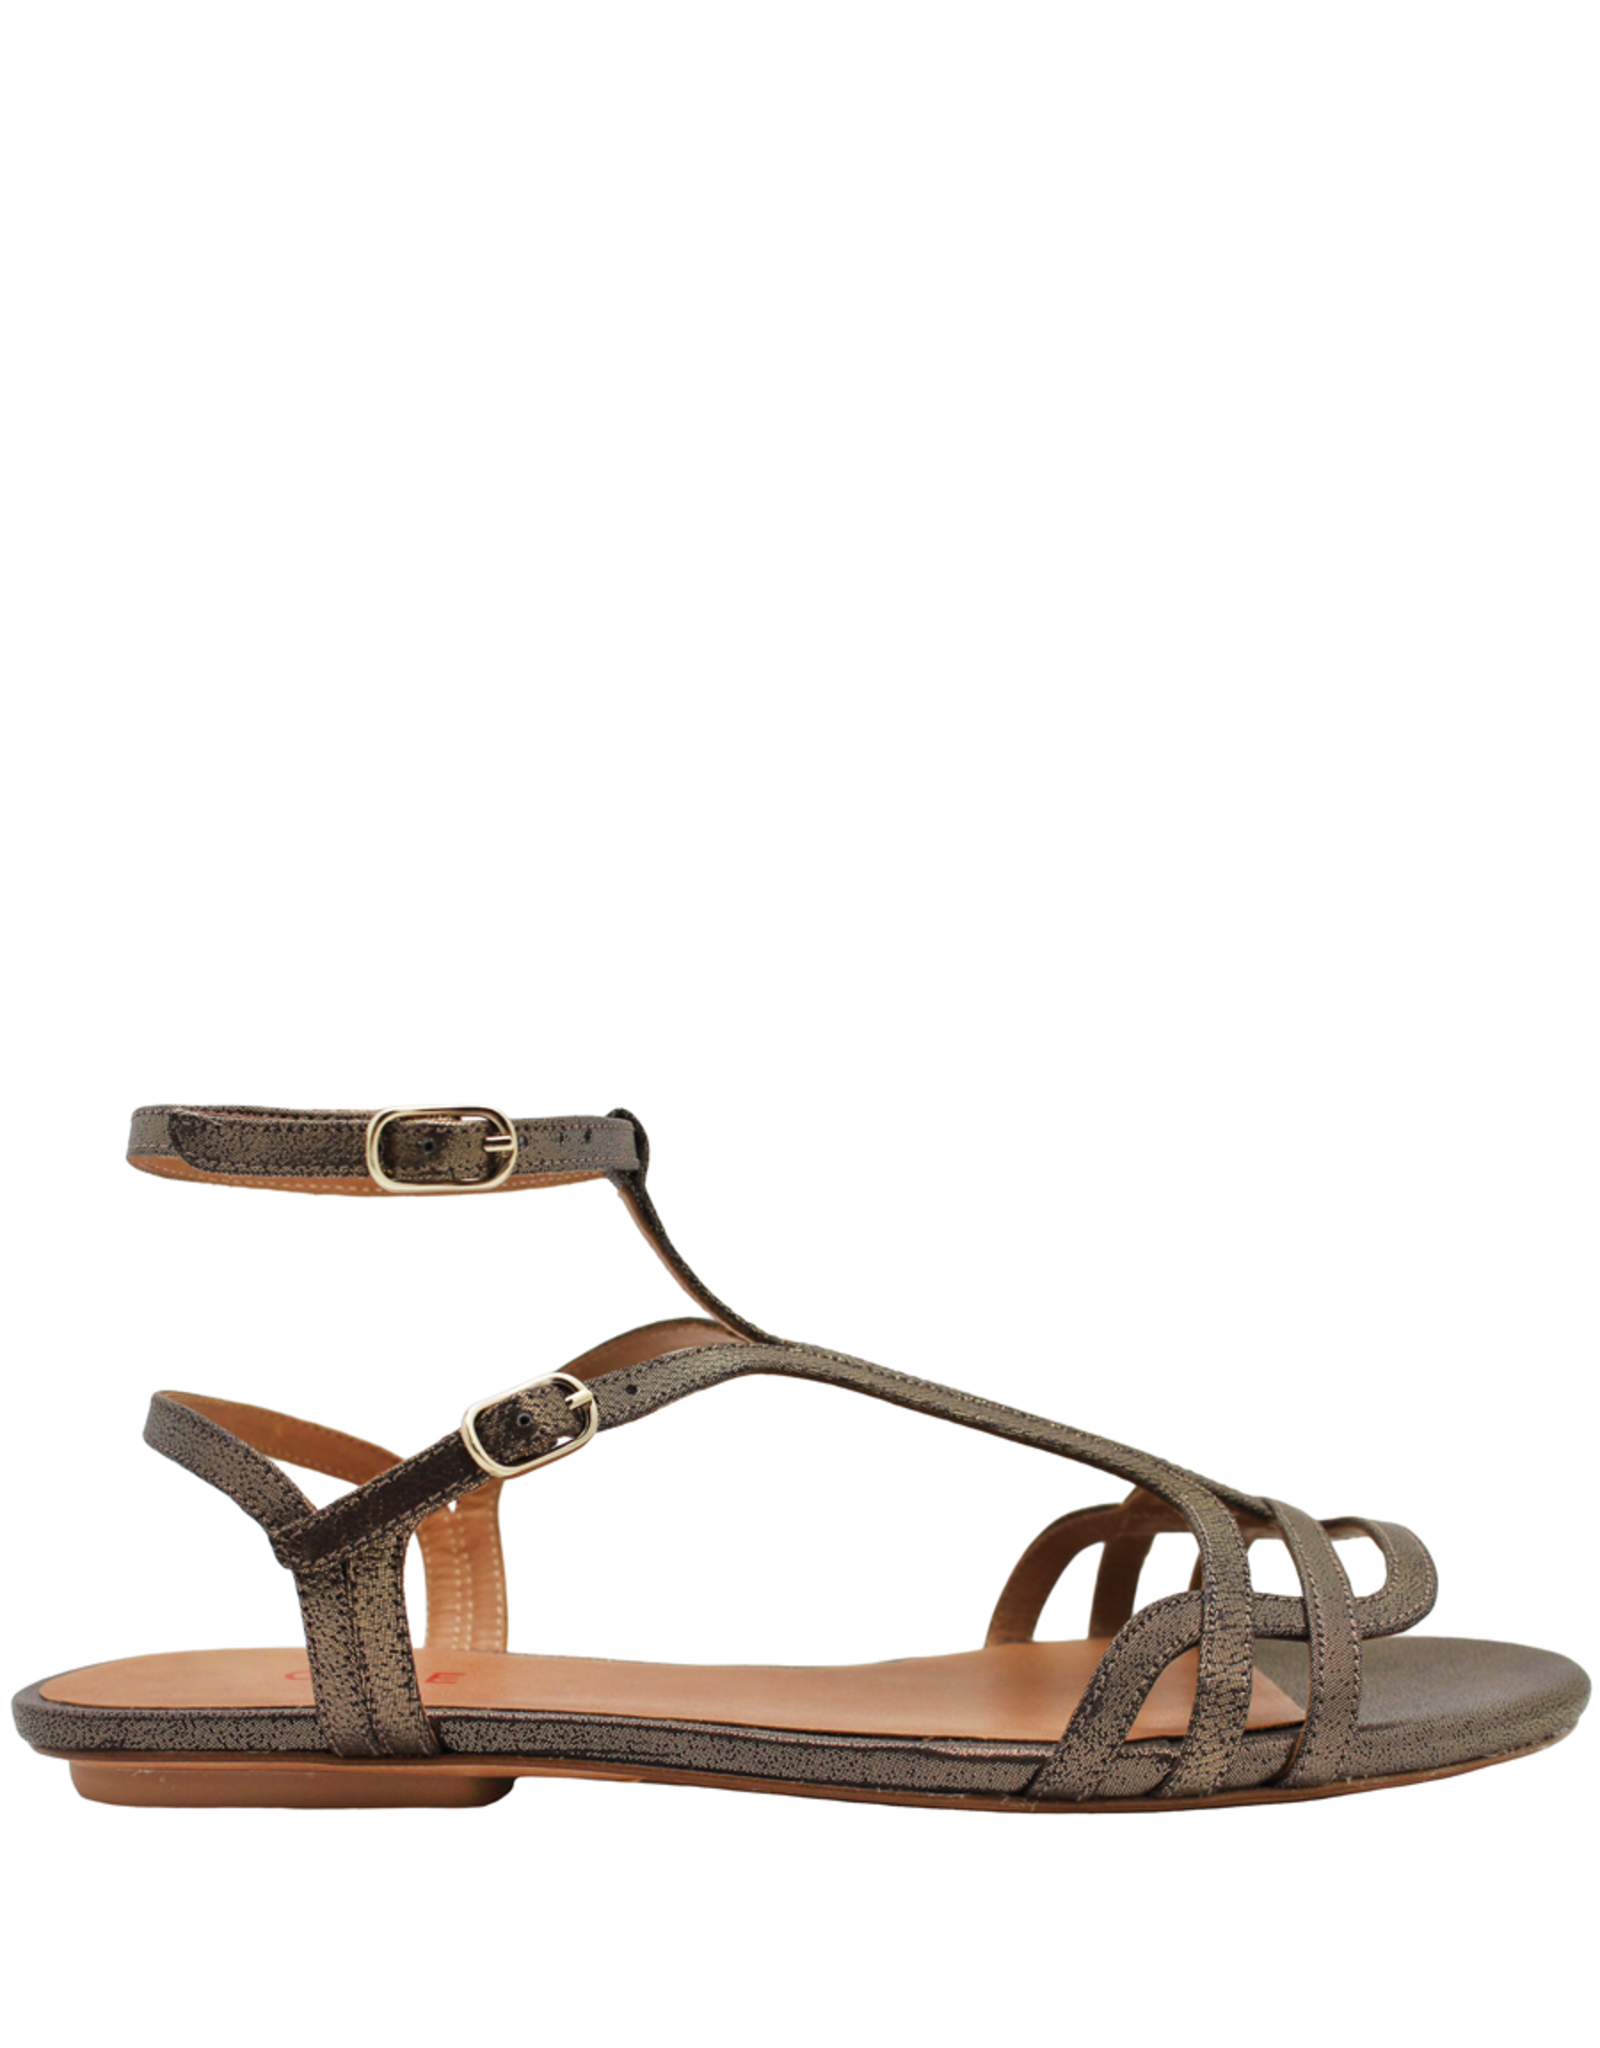 ChieMihara ChieMihara Metallic Double Buckle Art Deco Sandal Yael